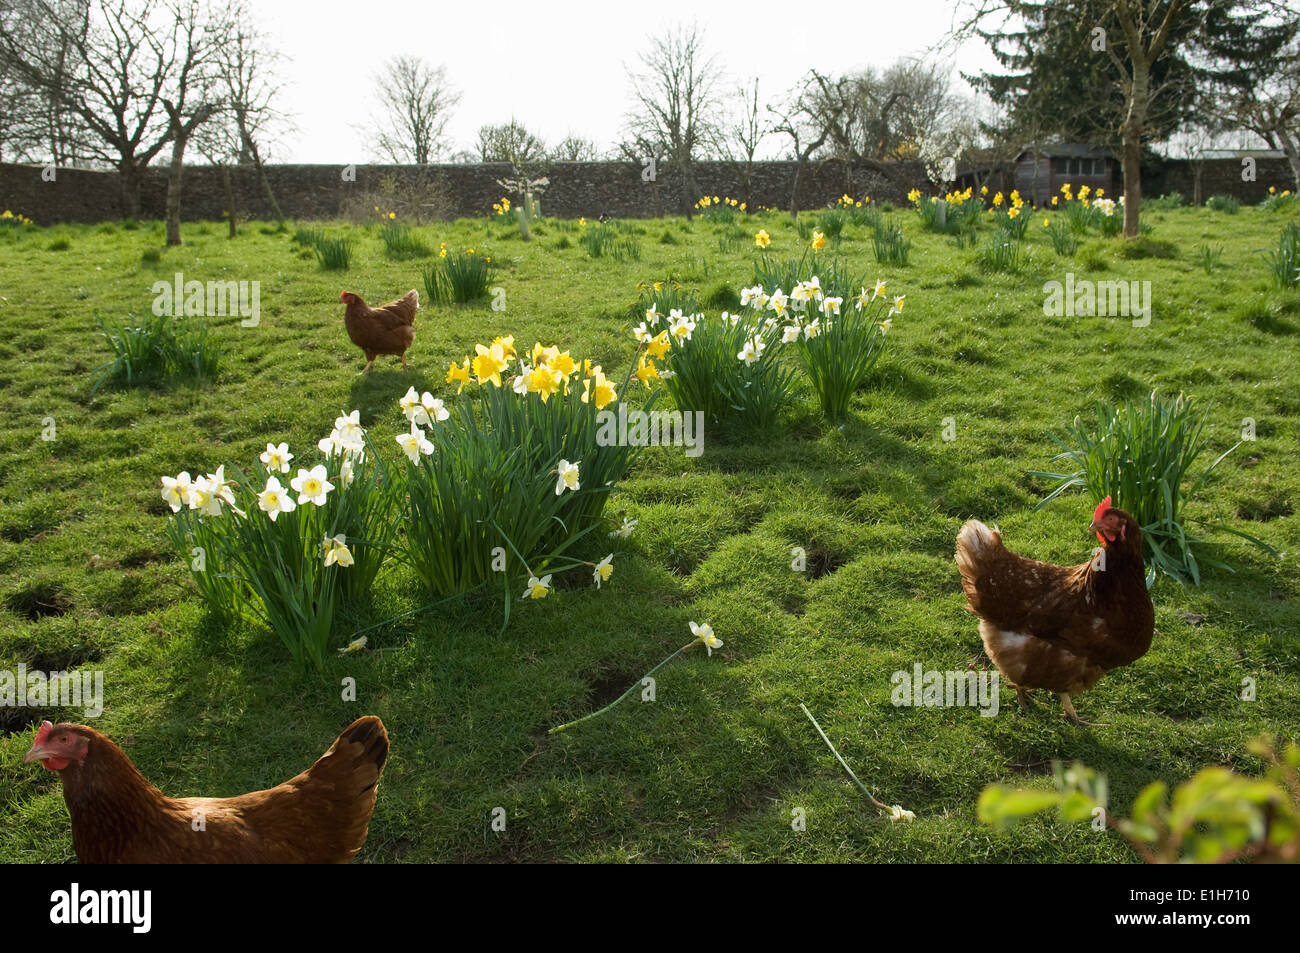 Free range hens in field - Stock Image